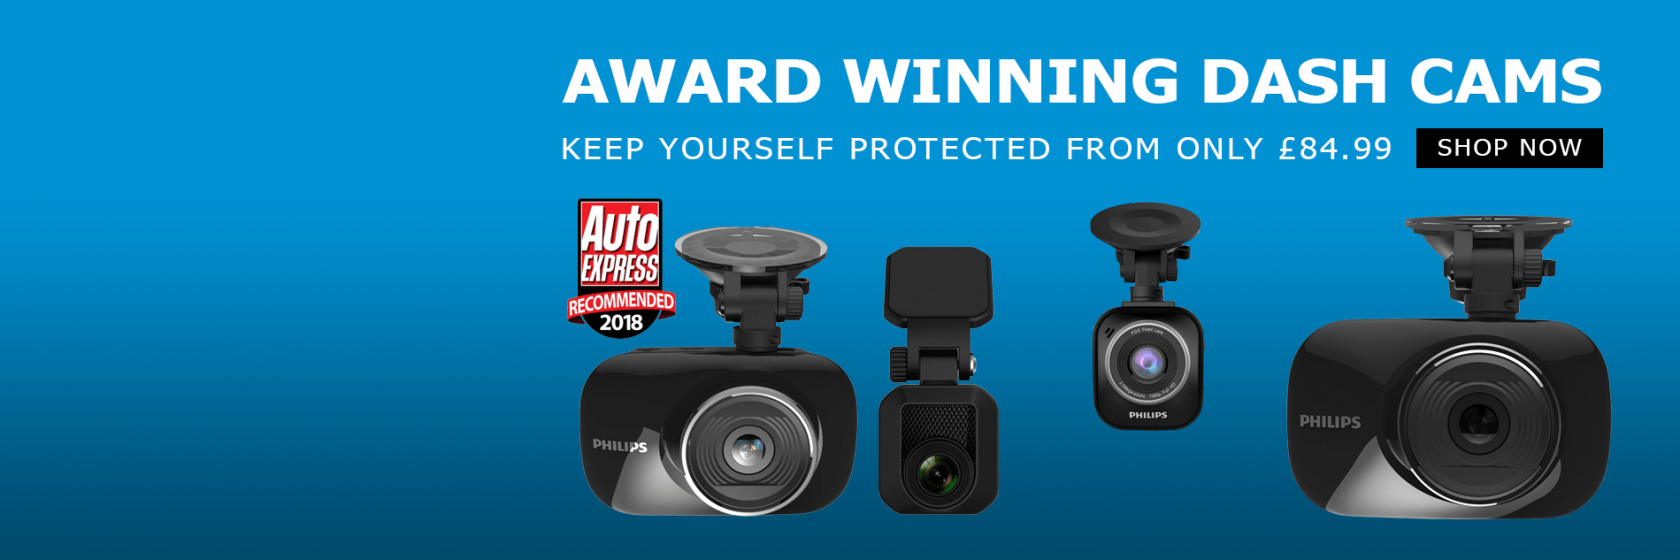 Award Winning Dash Cams